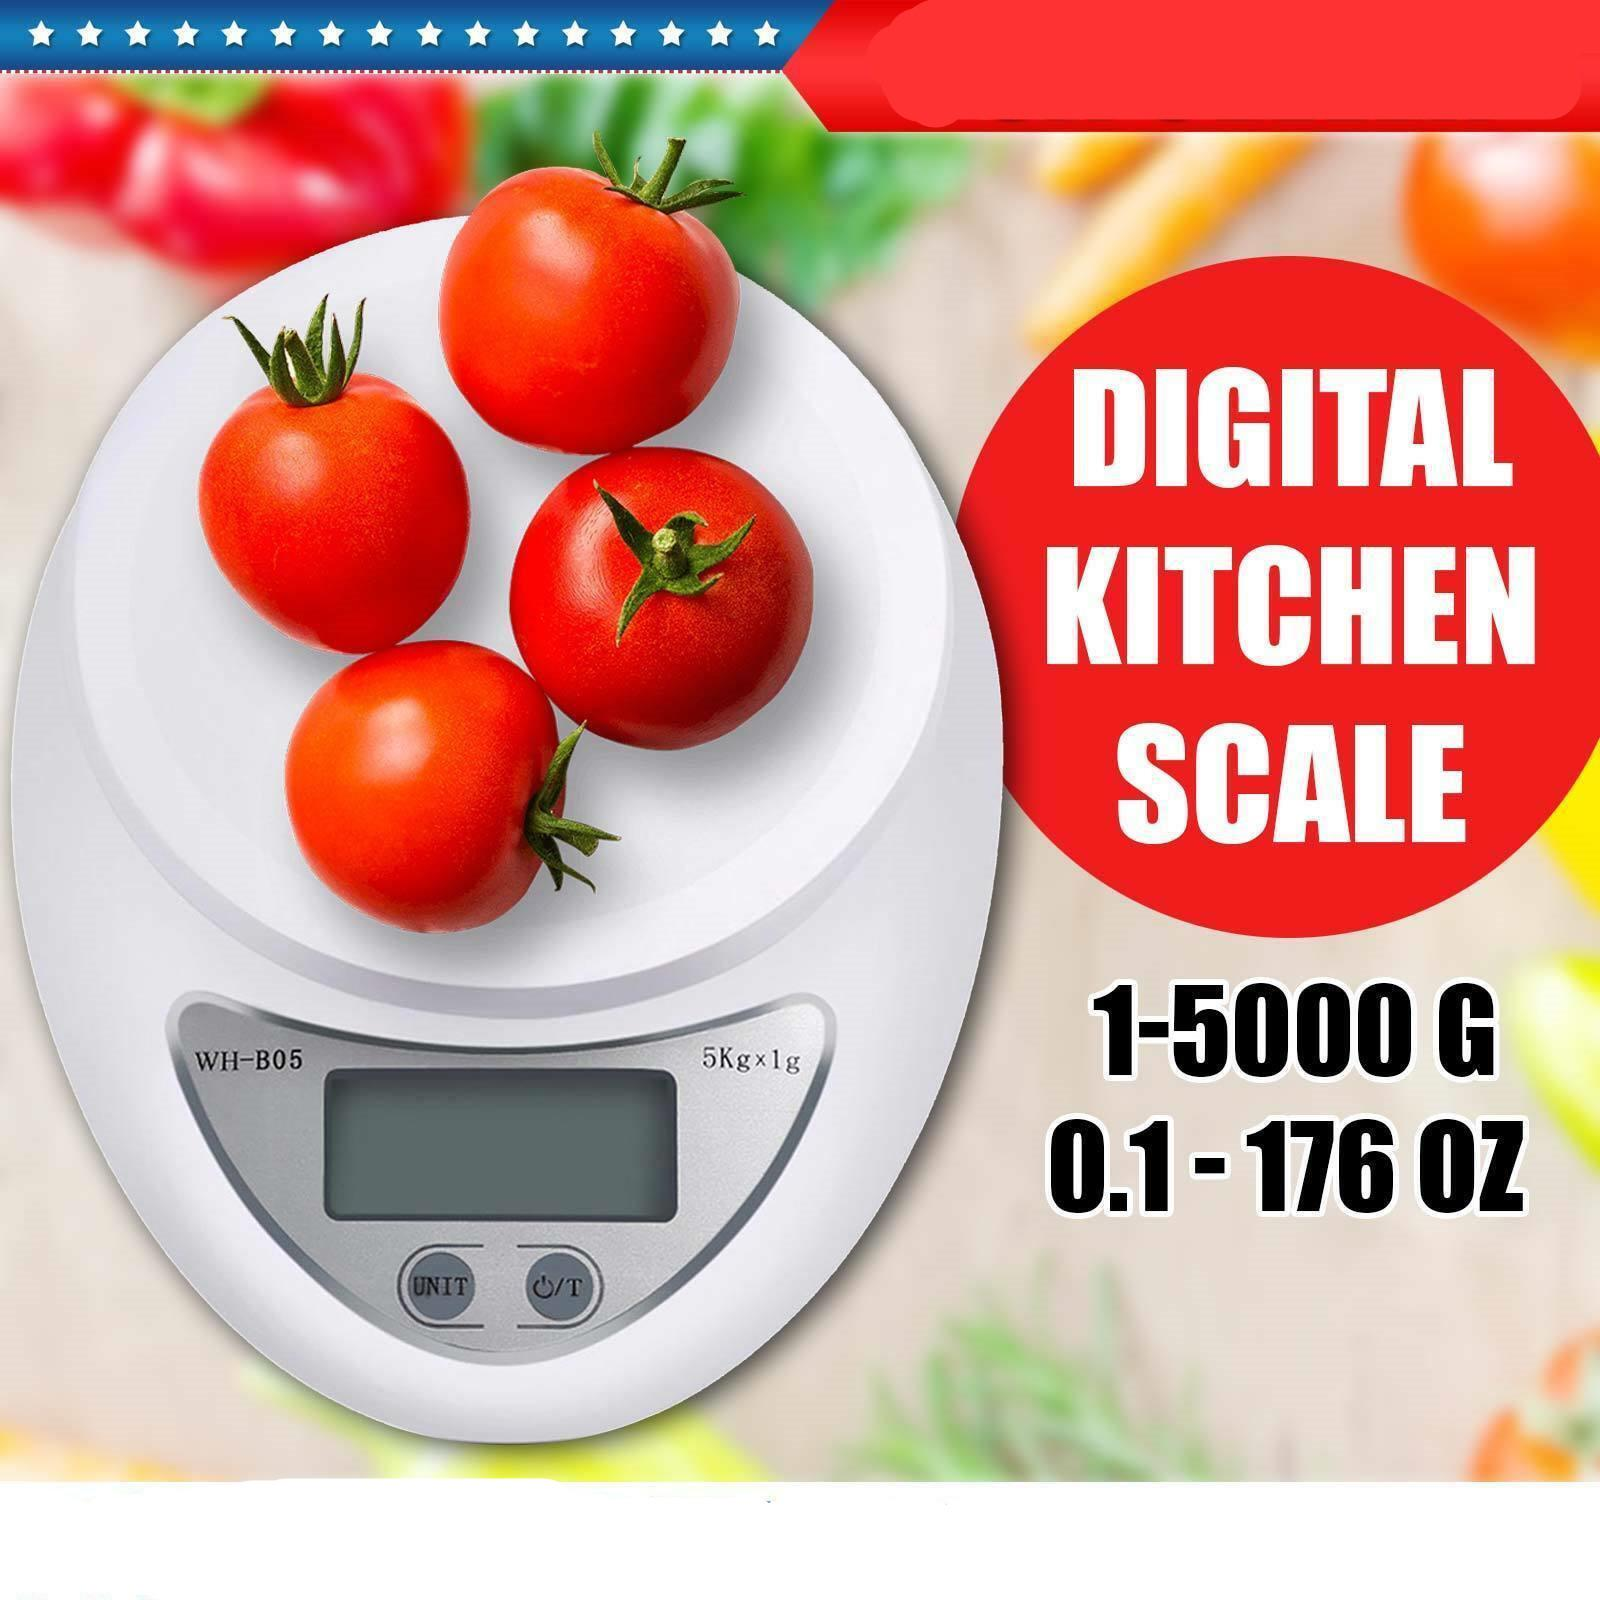 5kg 5000g/1g LCD Digital Kitchen Scale 11LBS Electronic Weight Diet Cooking Food Balance Weight Measure Tool Gram Oz Lb